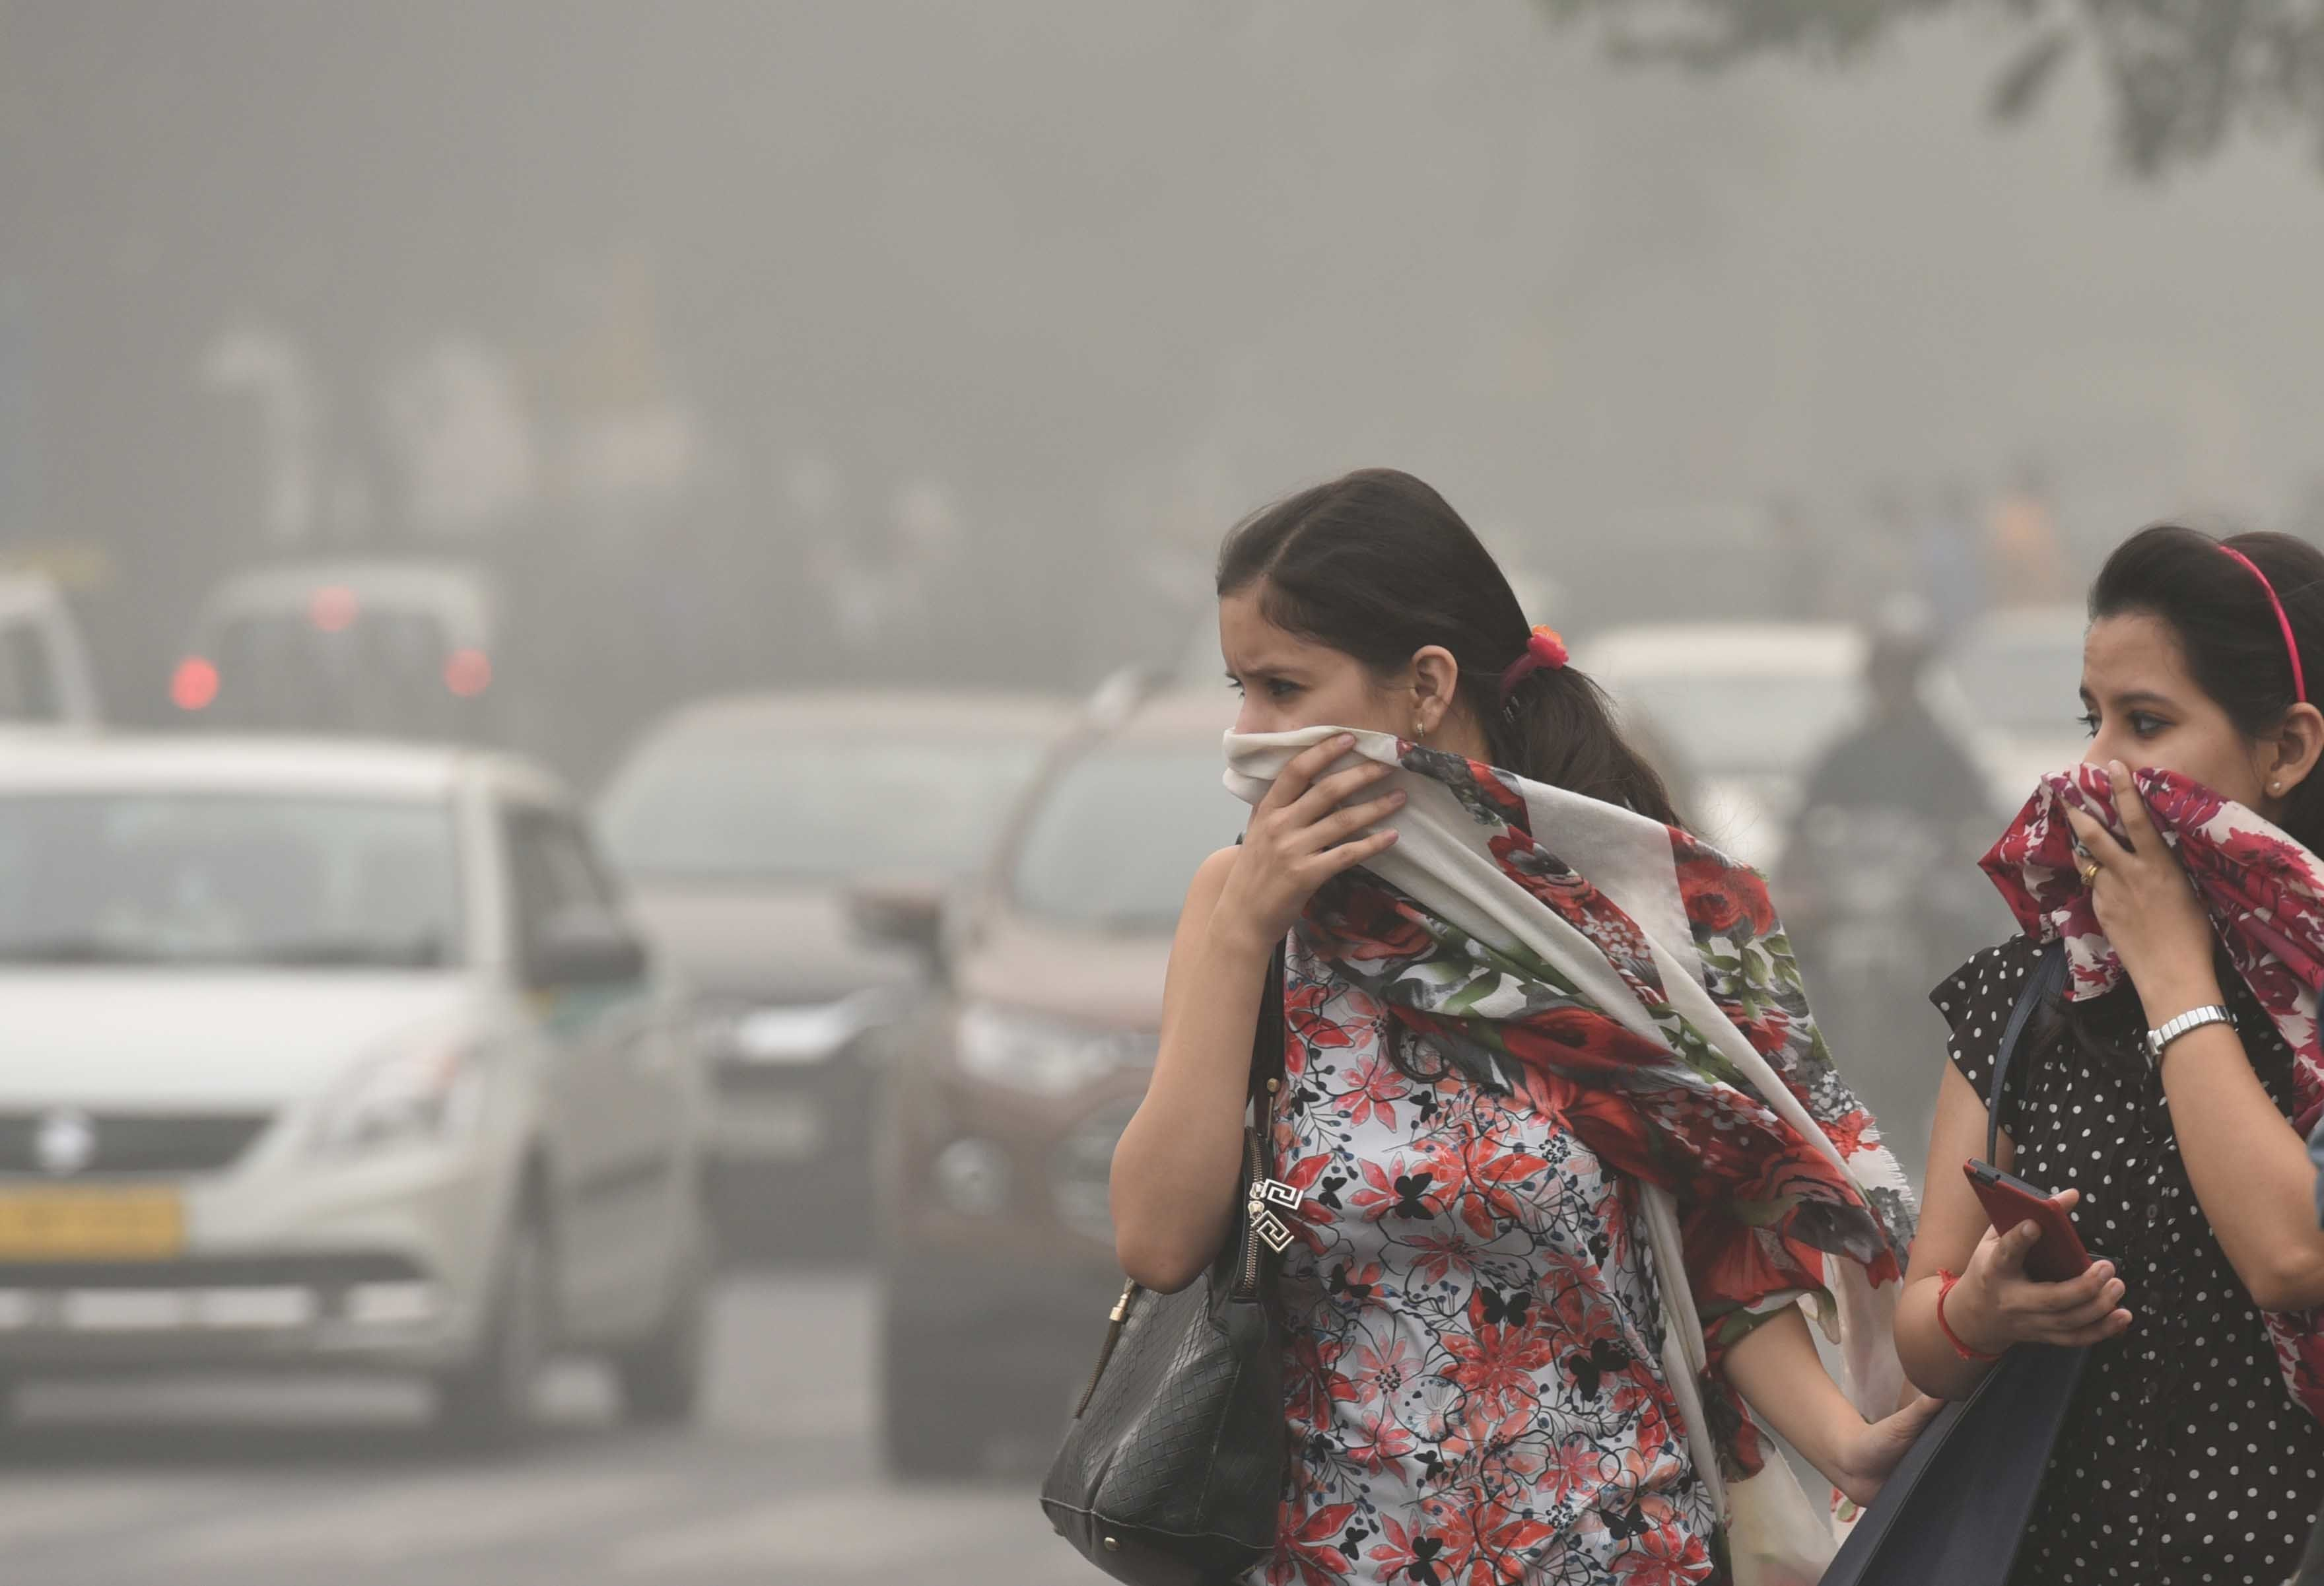 NEW DELHI, INDIA - NOVEMBER 6: People protect themselves after pollution reached hazardous levels at Janpat Road, on November 6, 2016 in New Delhi, India. New Delhi's air quality has steadily worsened over the years, a consequence of rapid urbanisation that brings pollution from diesel engines, coal-fired power plants and industrial emissions. The air quality continued to remain alarming in Delhi-NCR because of calm winds. People living in Delhi-NCR complained about respiratory problems and itching in the eyes due to smog all over the region. (Photo by Arun Sharma/Hindustan Times via Getty Images)